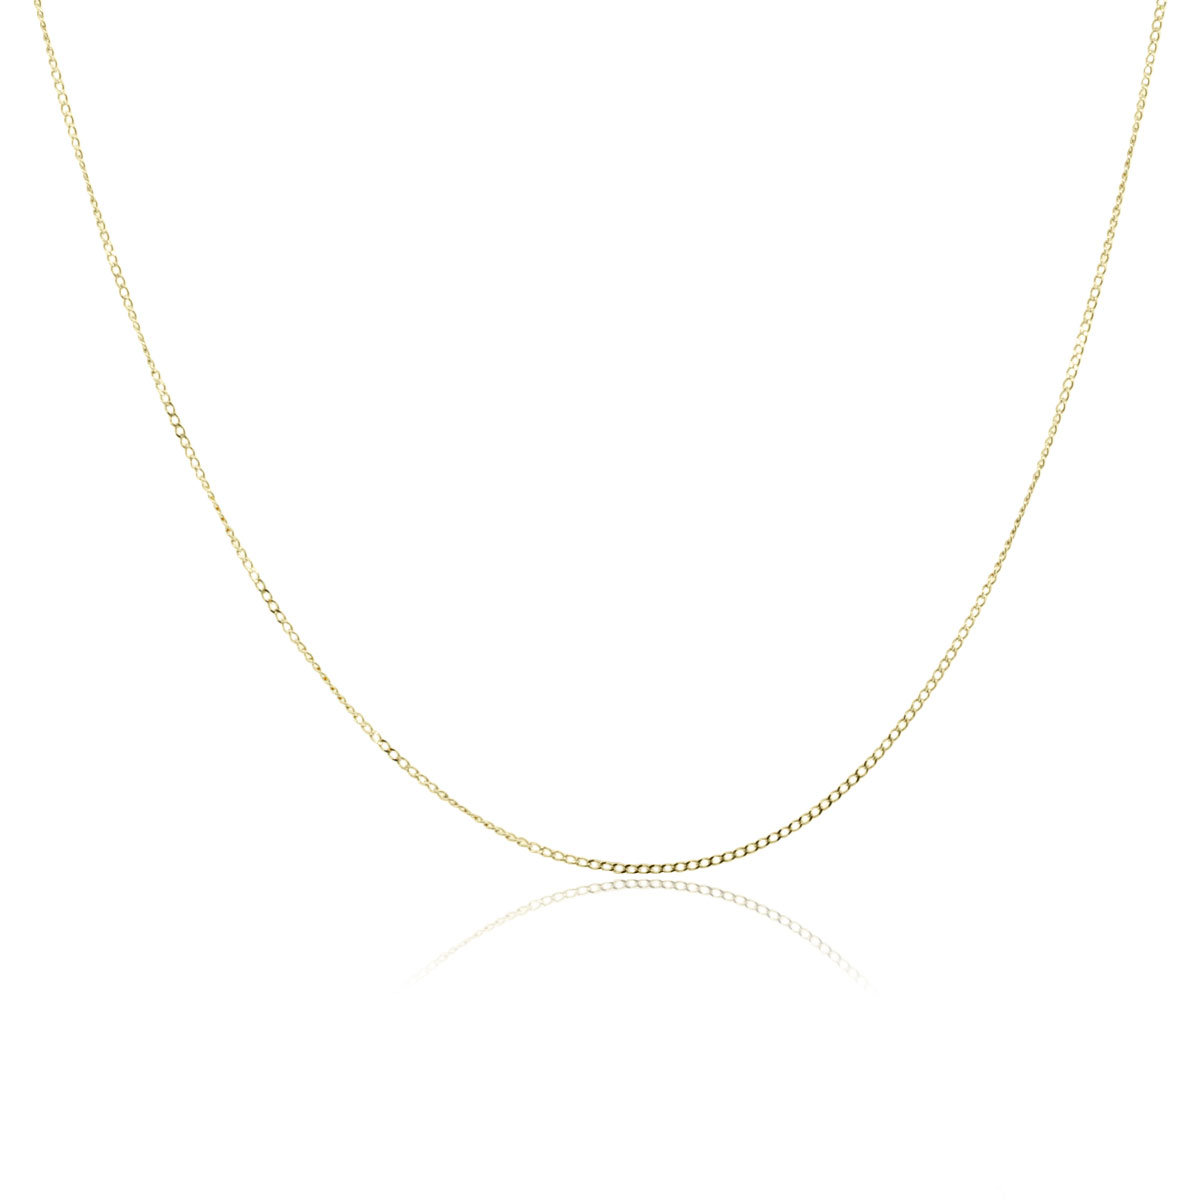 14k Yellow Gold Thin Link Chain Necklace